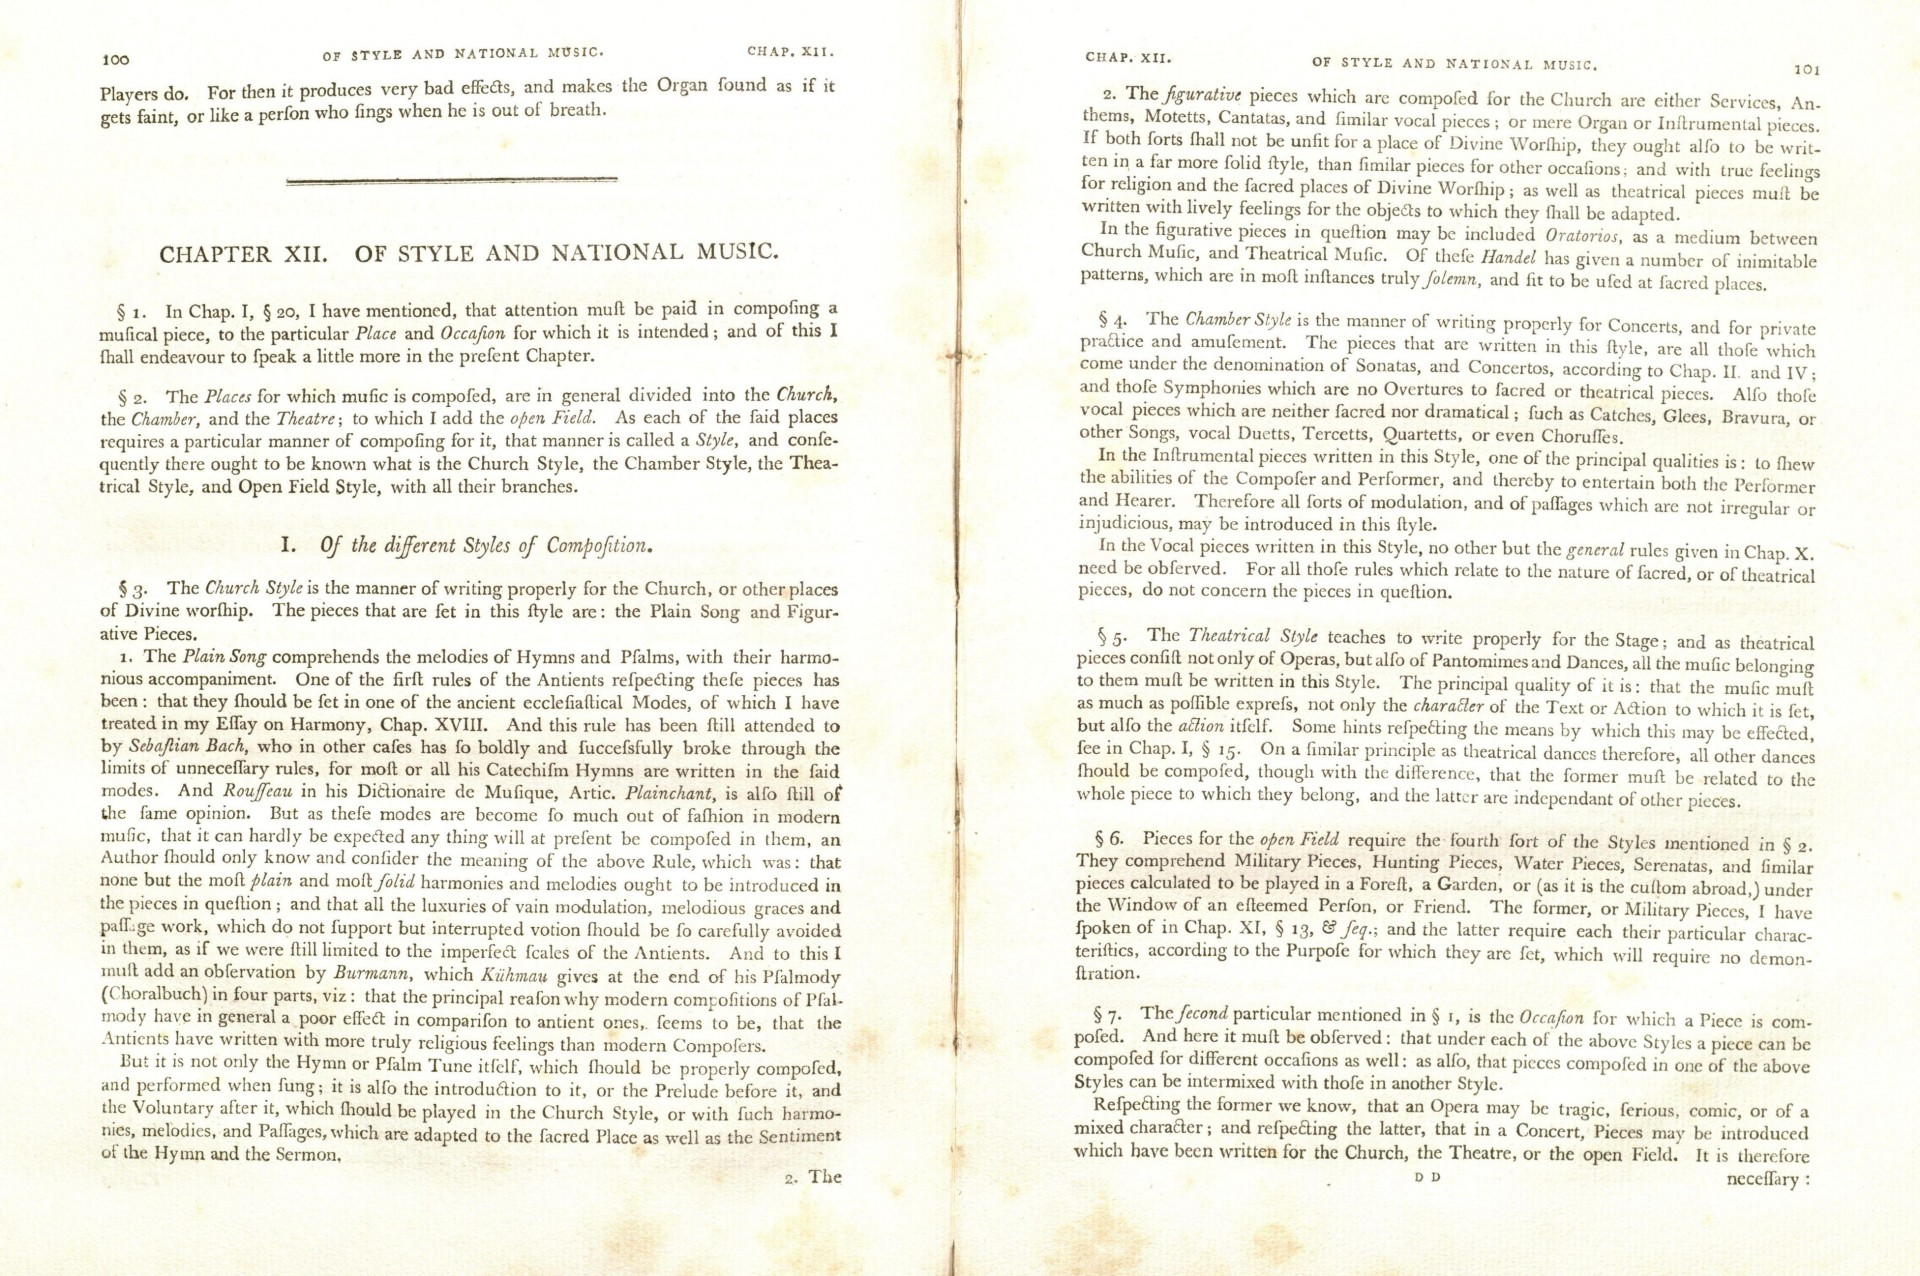 011 Essay On Music Sonata Form God Save The King From British College About Rock Kollmann Essays Musical Instrument Classical Theatre Rap Major Exceptional Country 1920